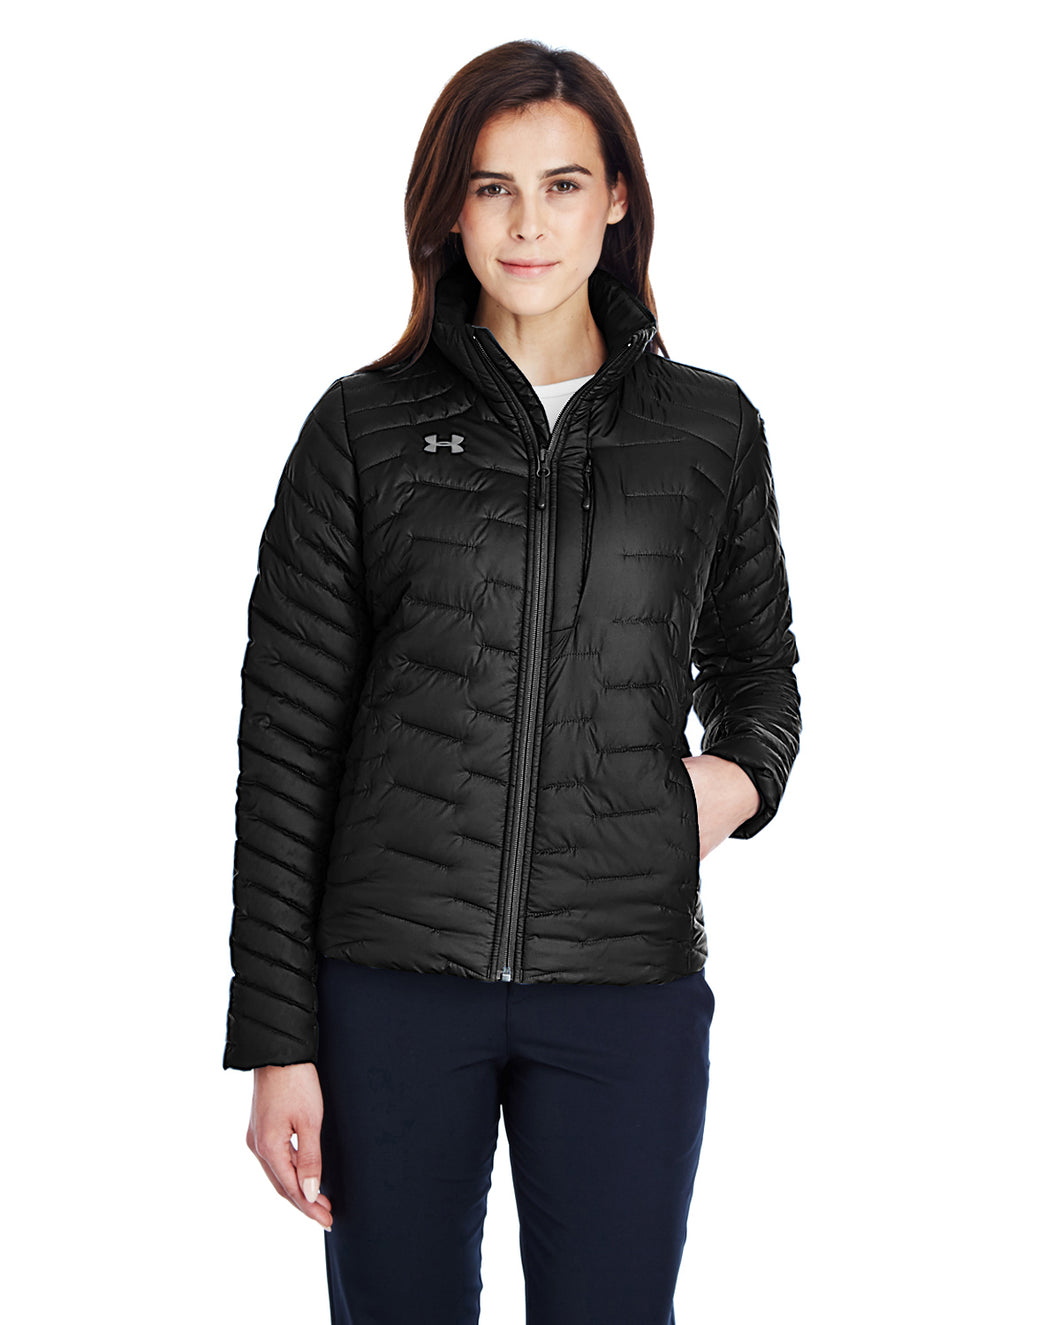 Under Armour Ladies' Corporate Reactor Jacket